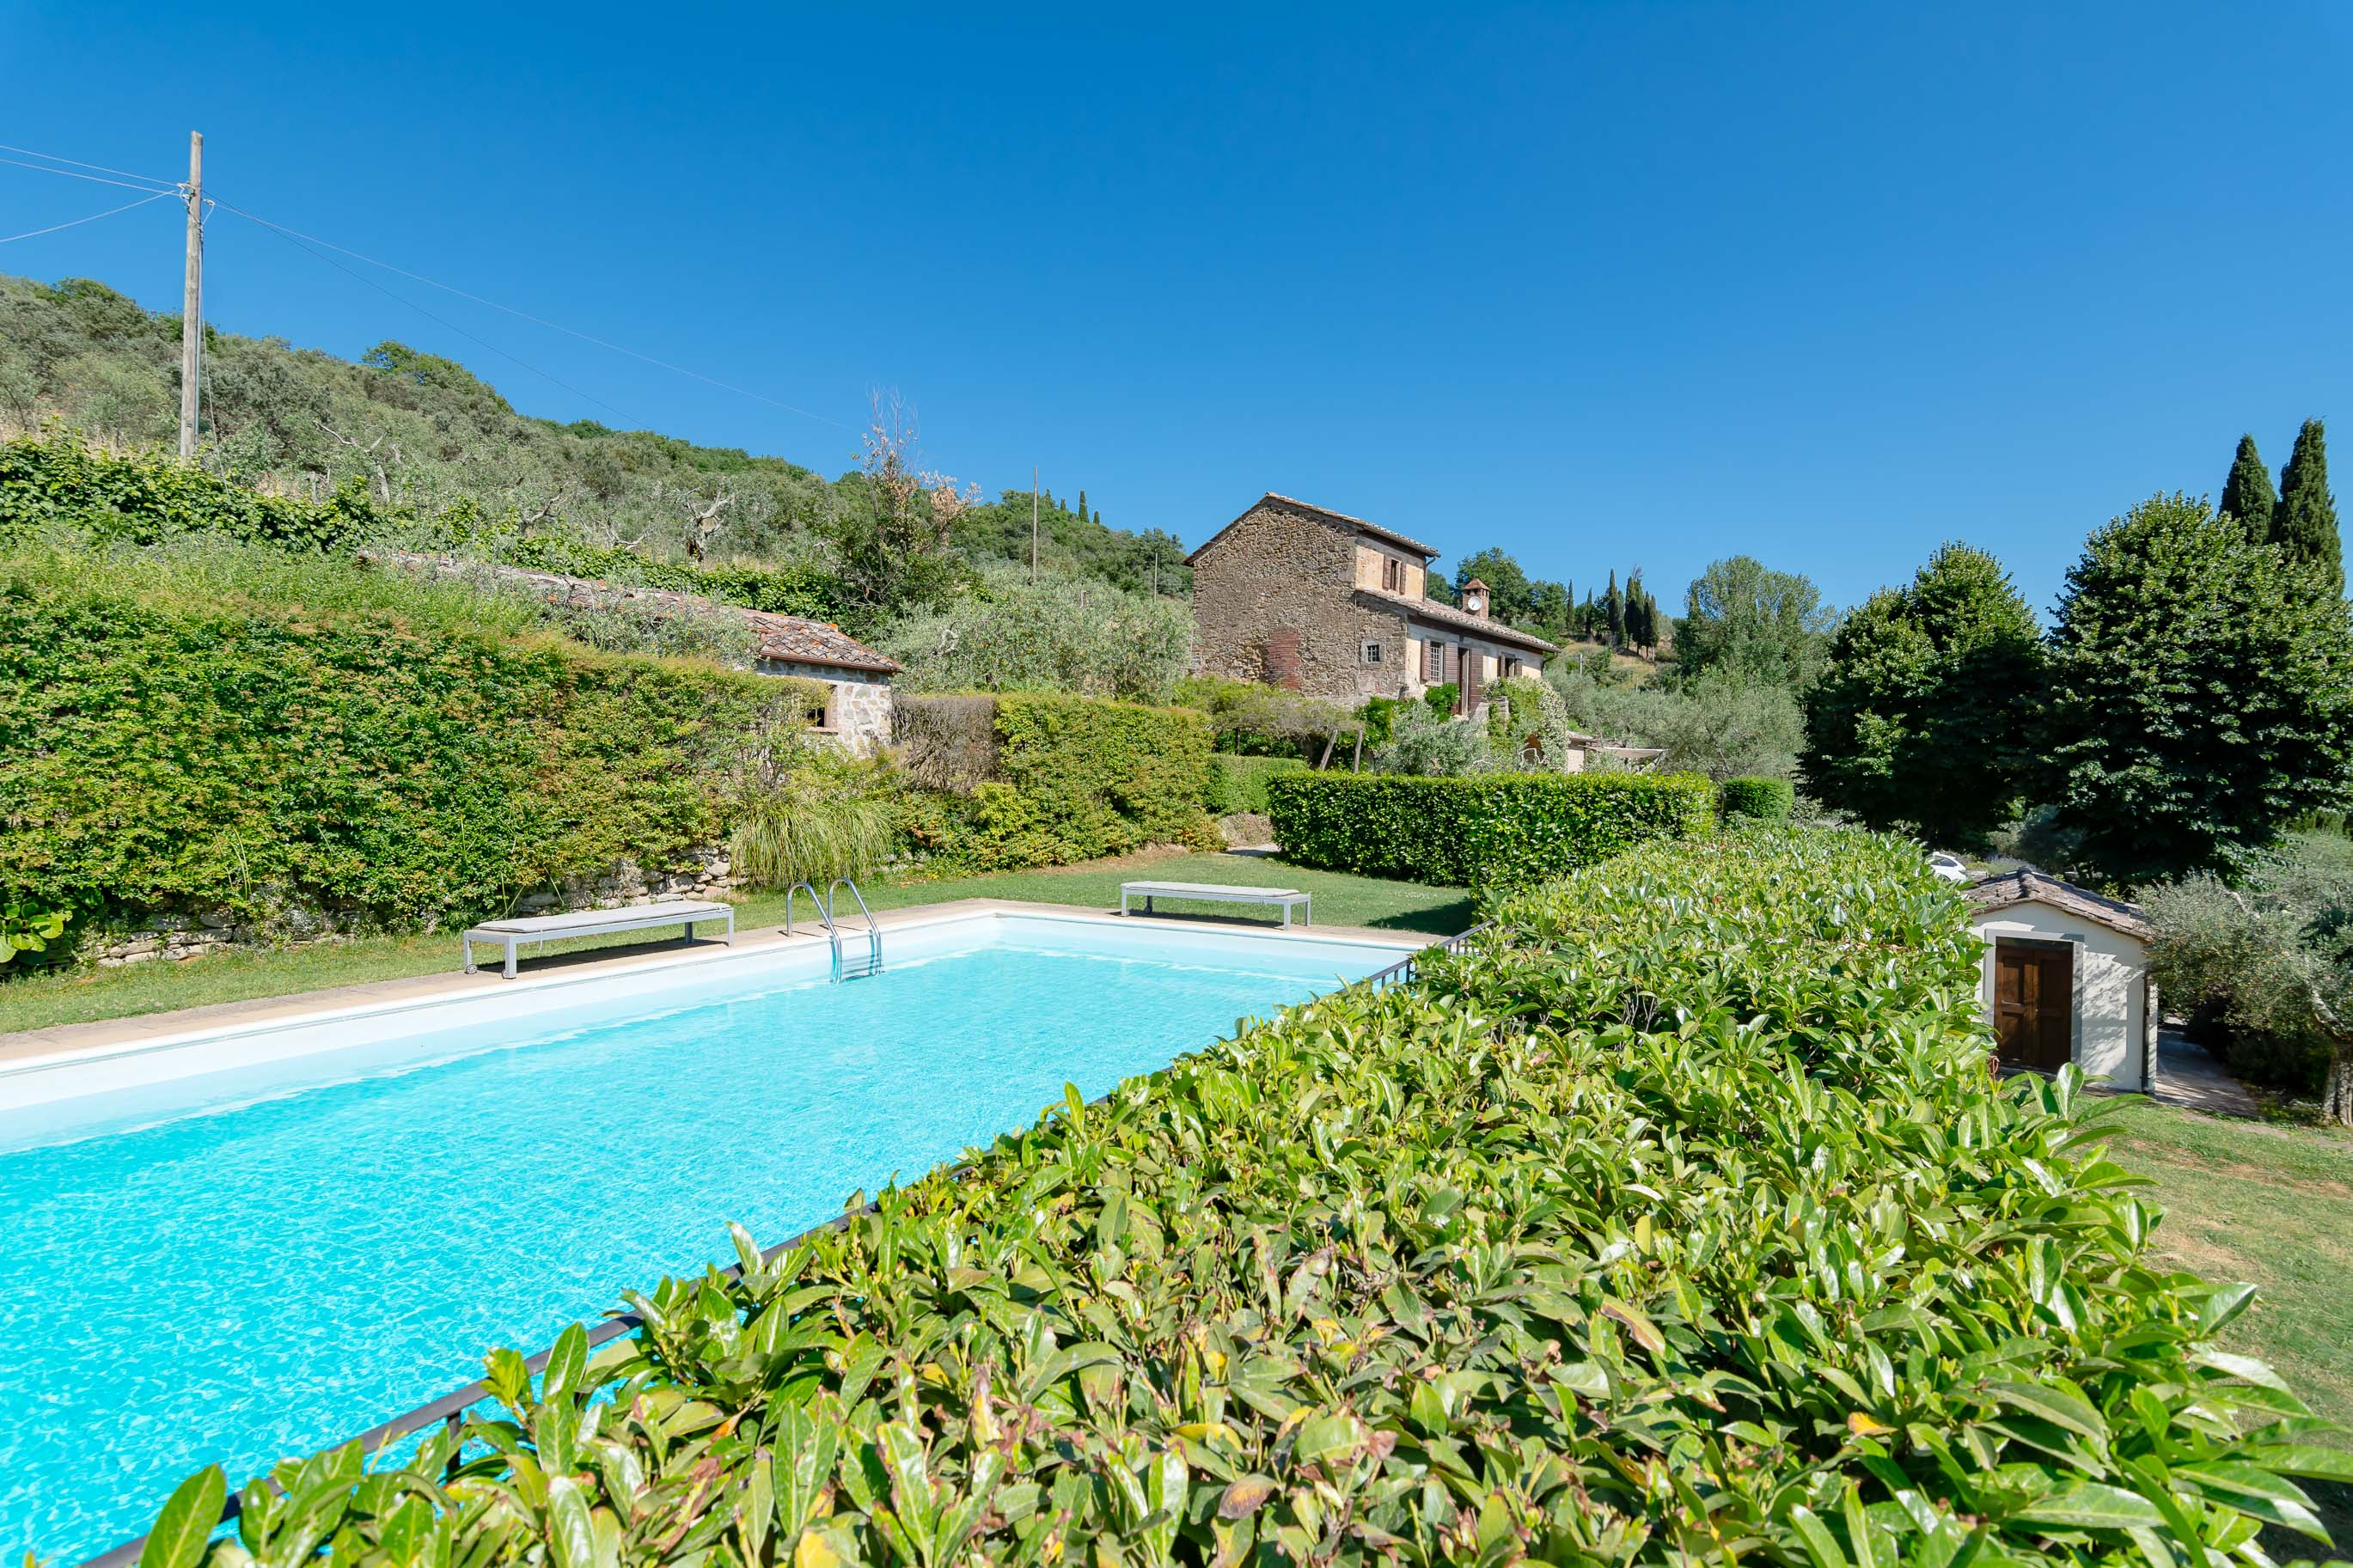 Secular farmhouse overlooking Cortona and swimming pool.